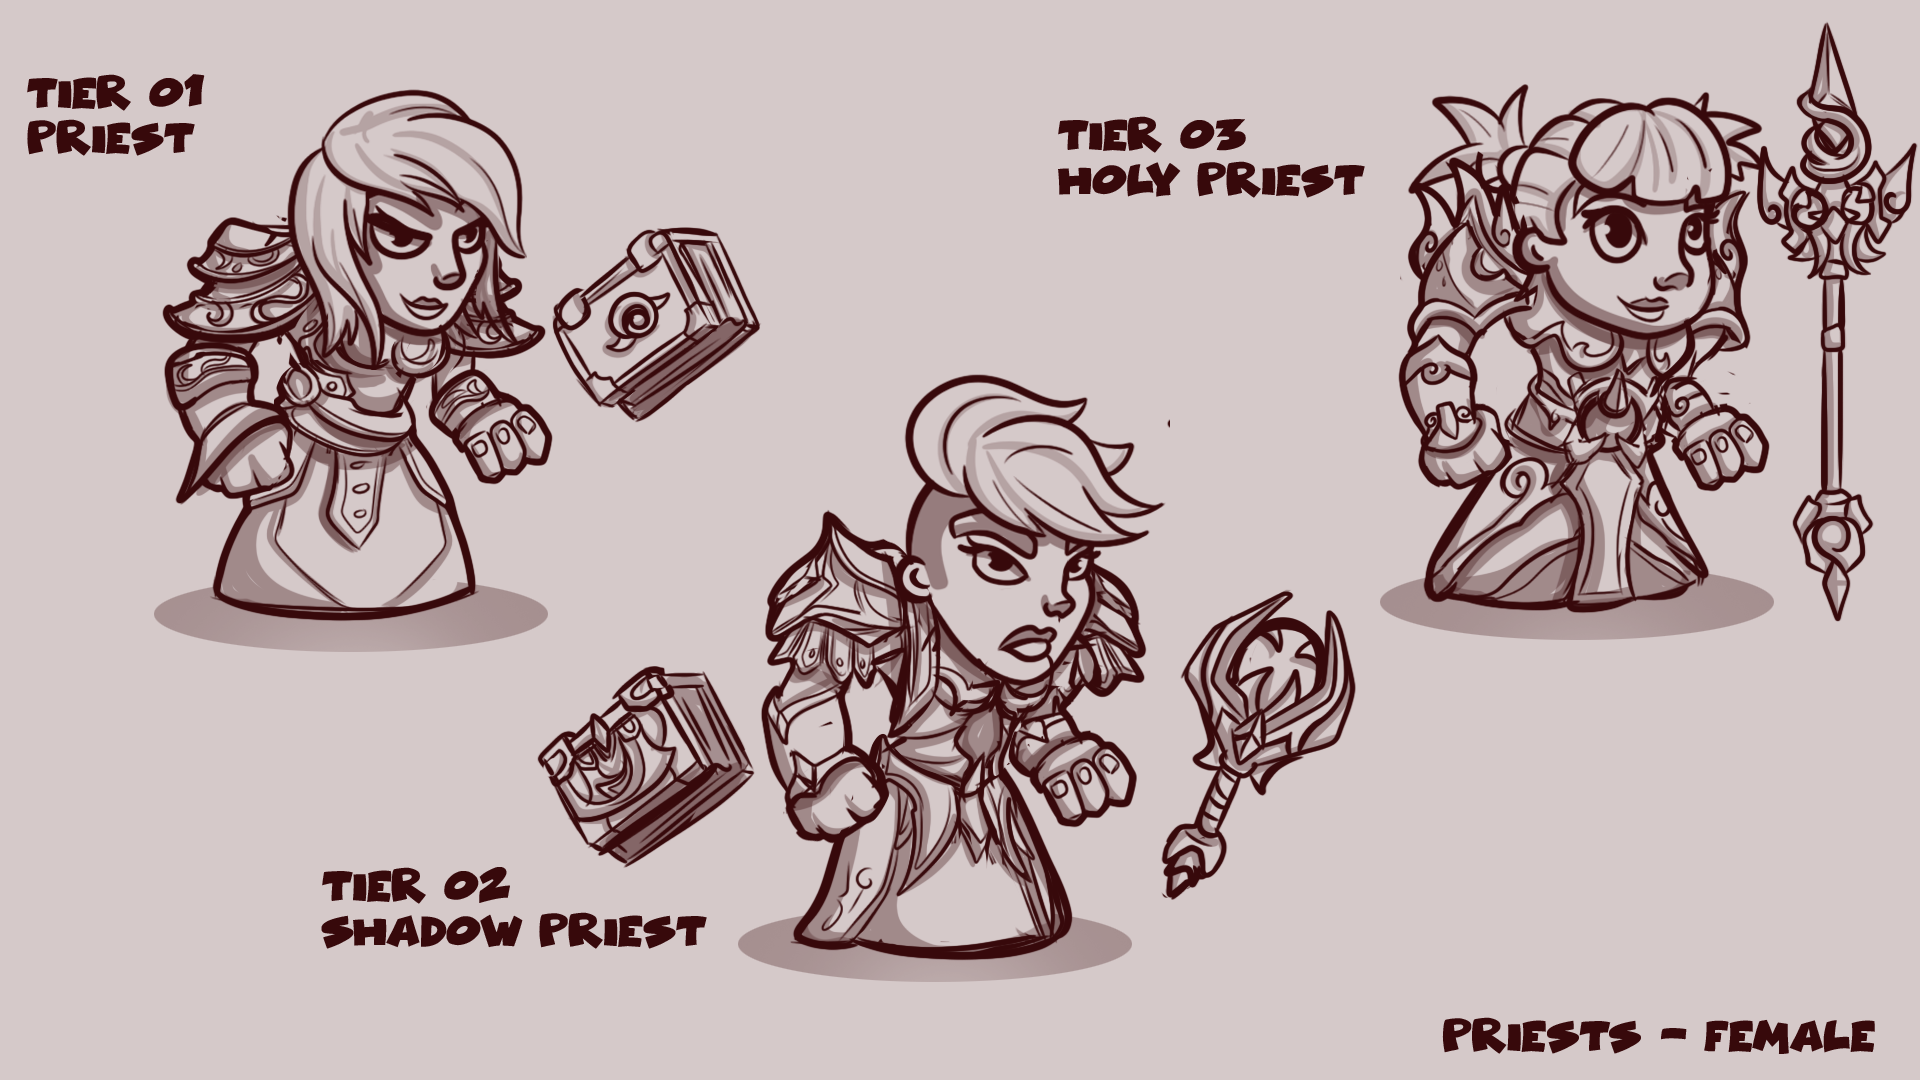 Priest Concepts